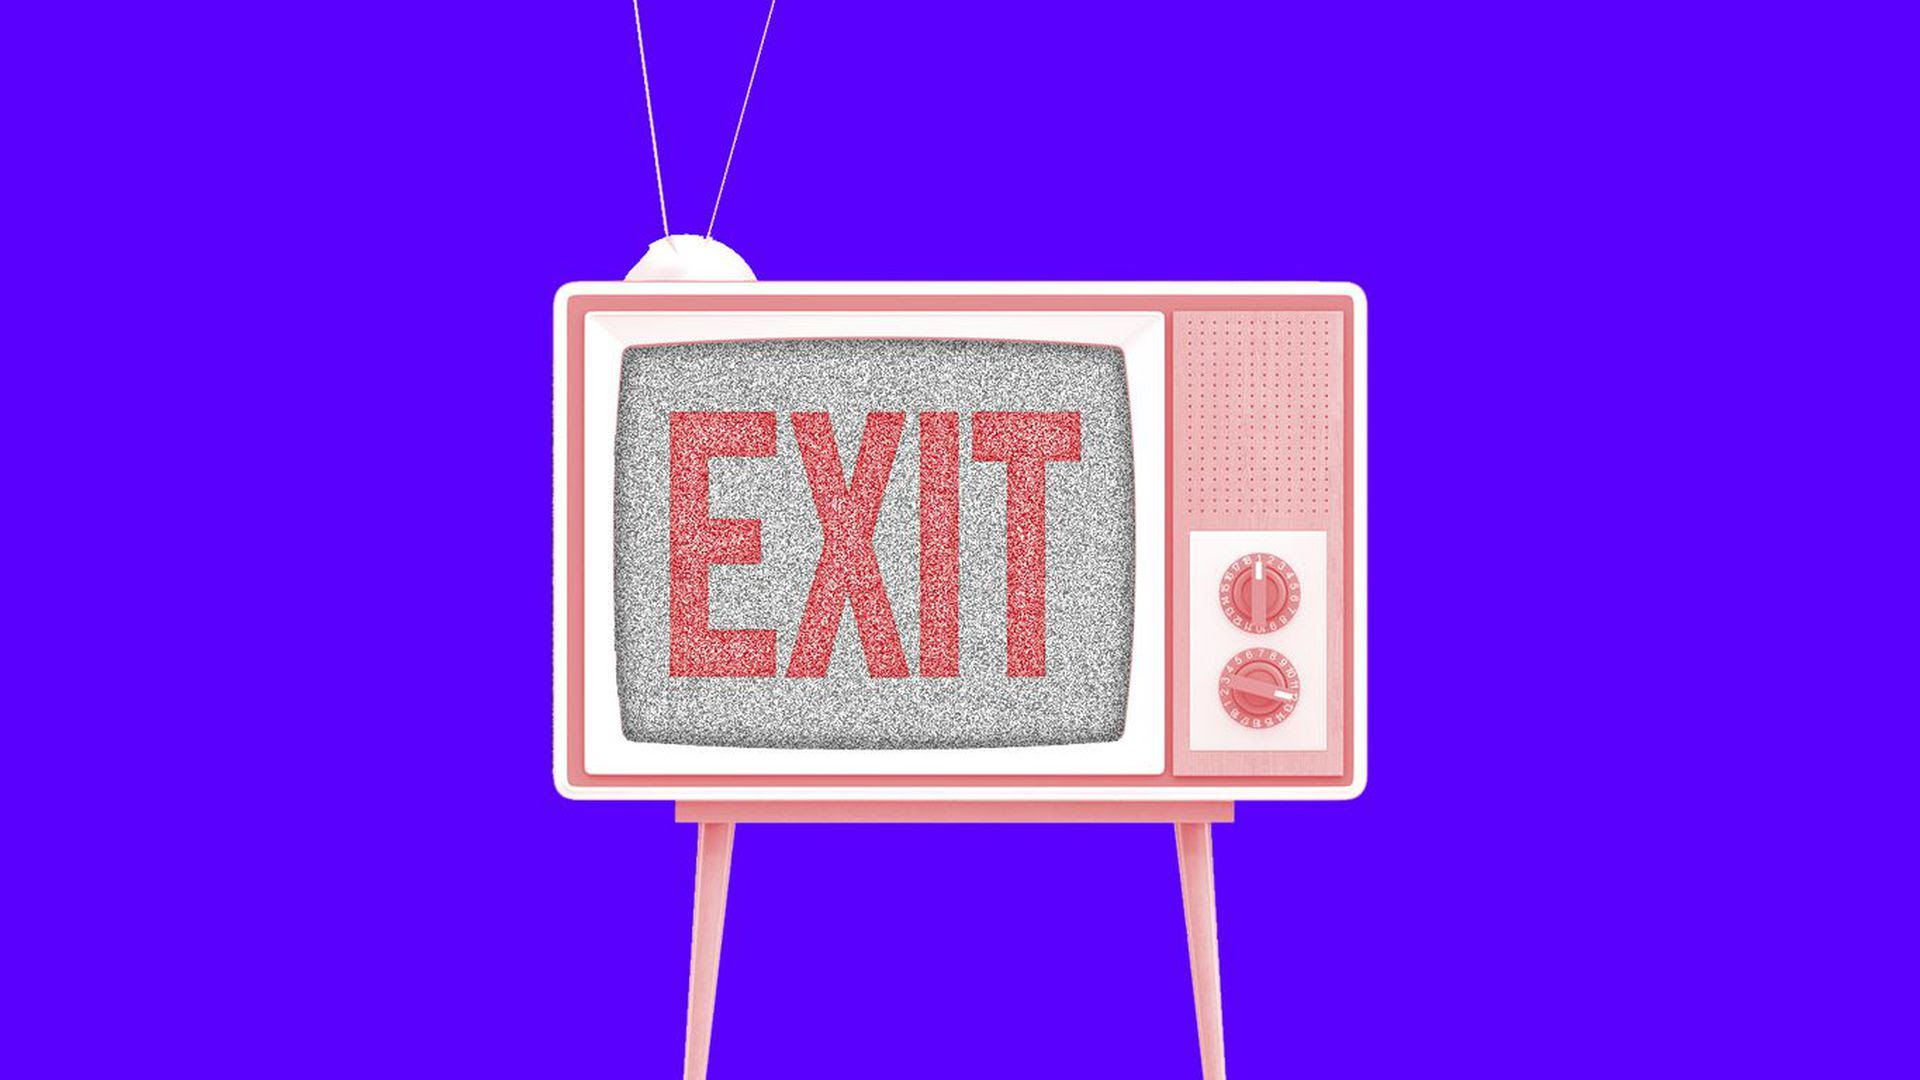 An illustration of a red television in front of a purple background that shows the exit symbol on its screen.